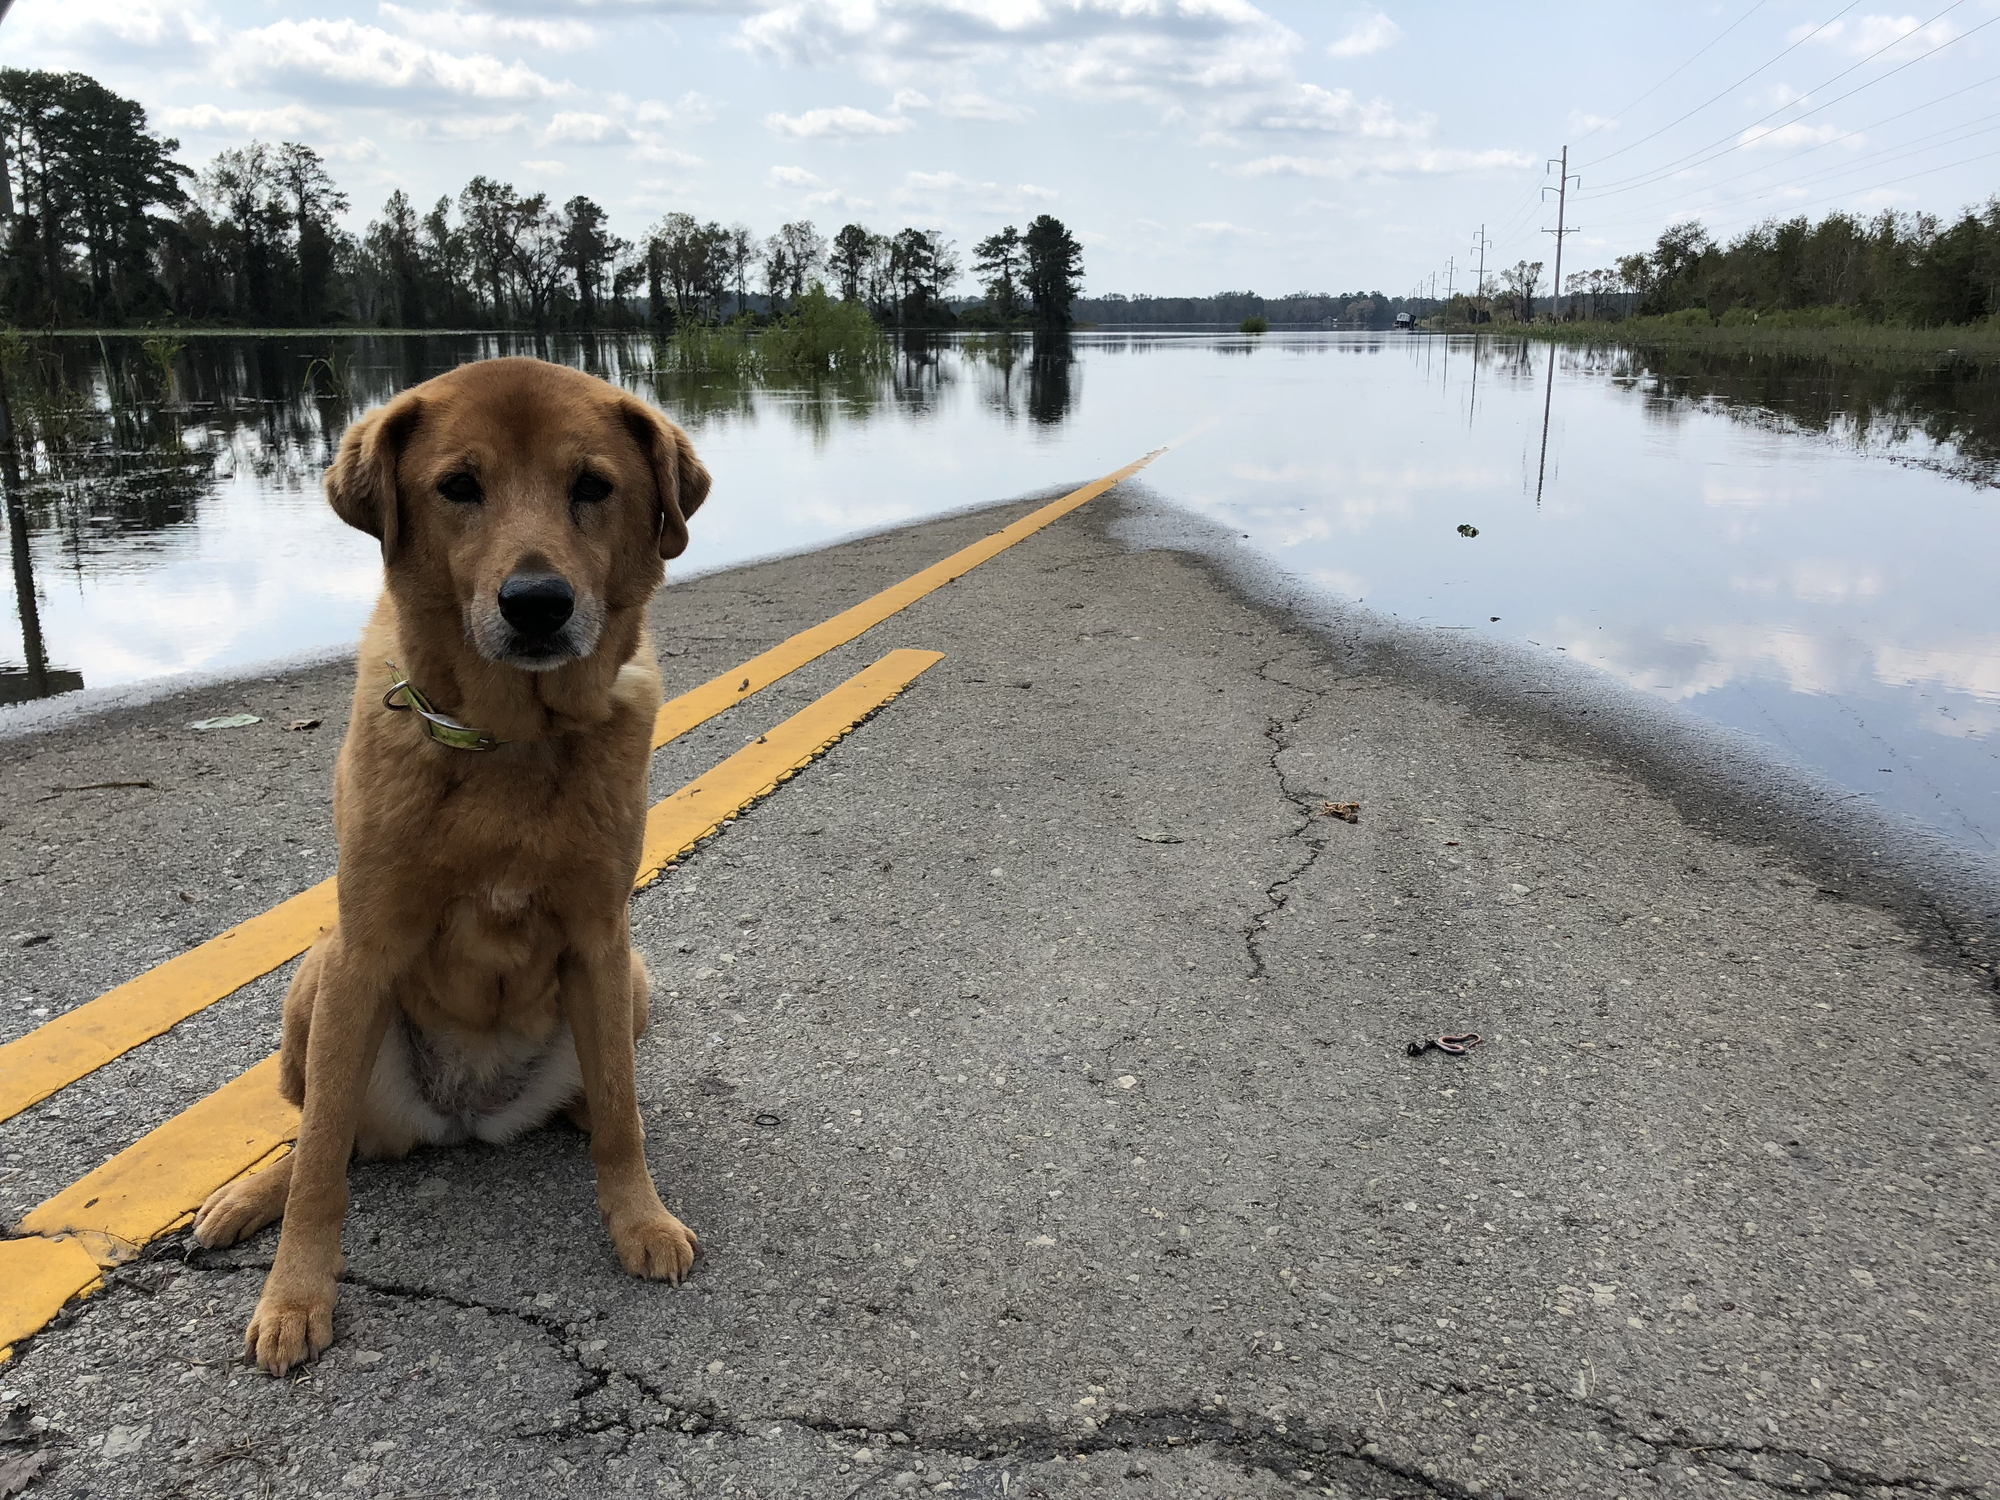 Dog on flooded road